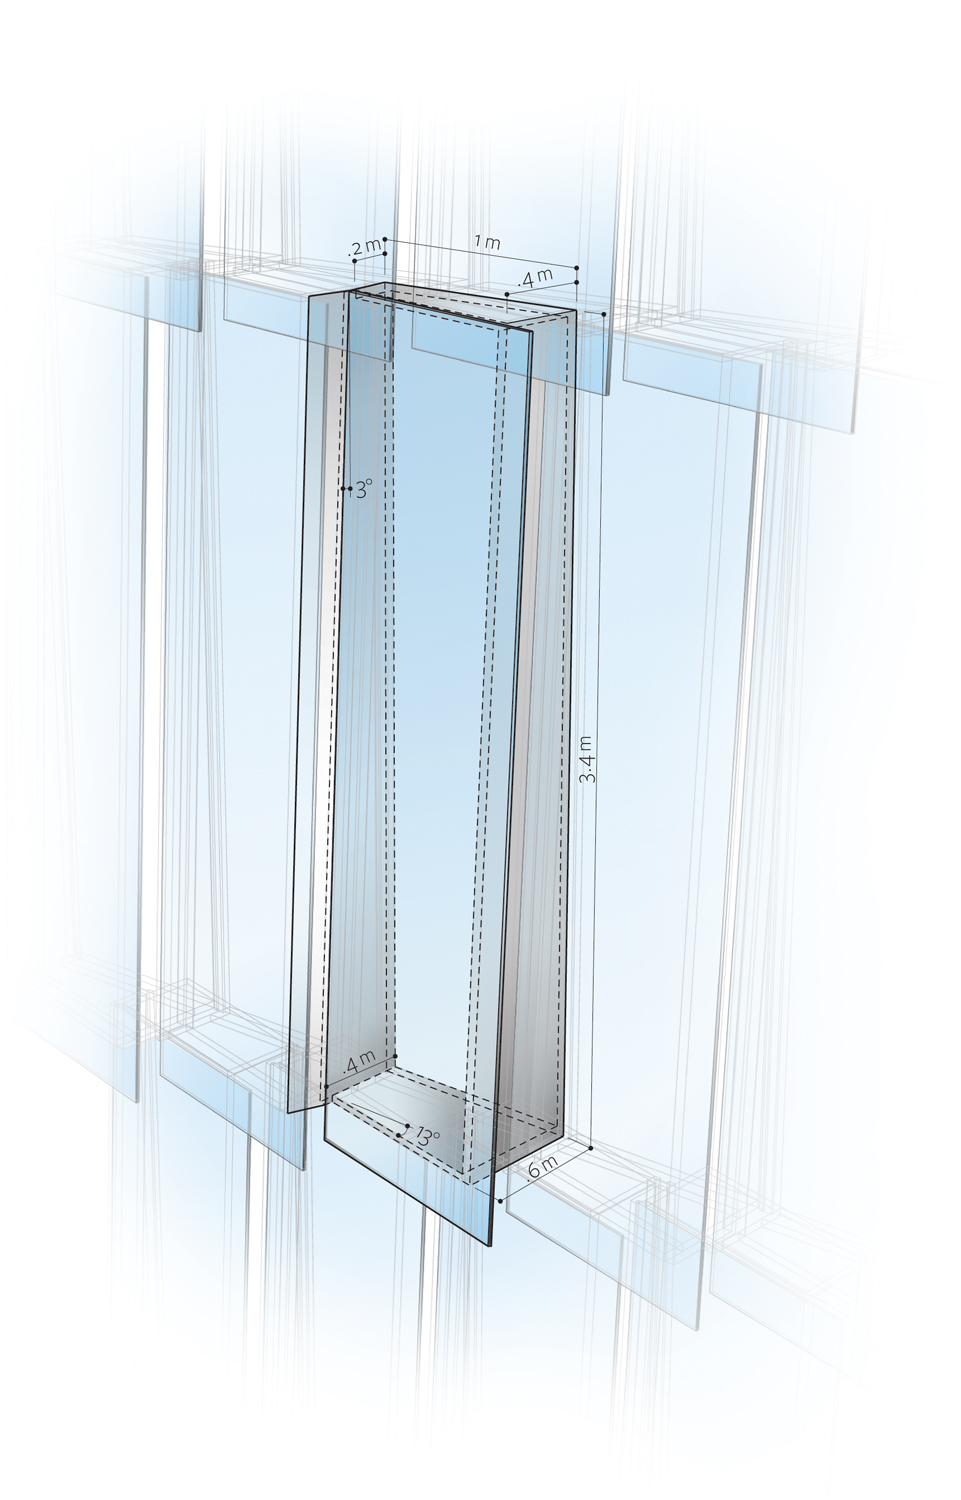 curtain wall module_axon.jpg